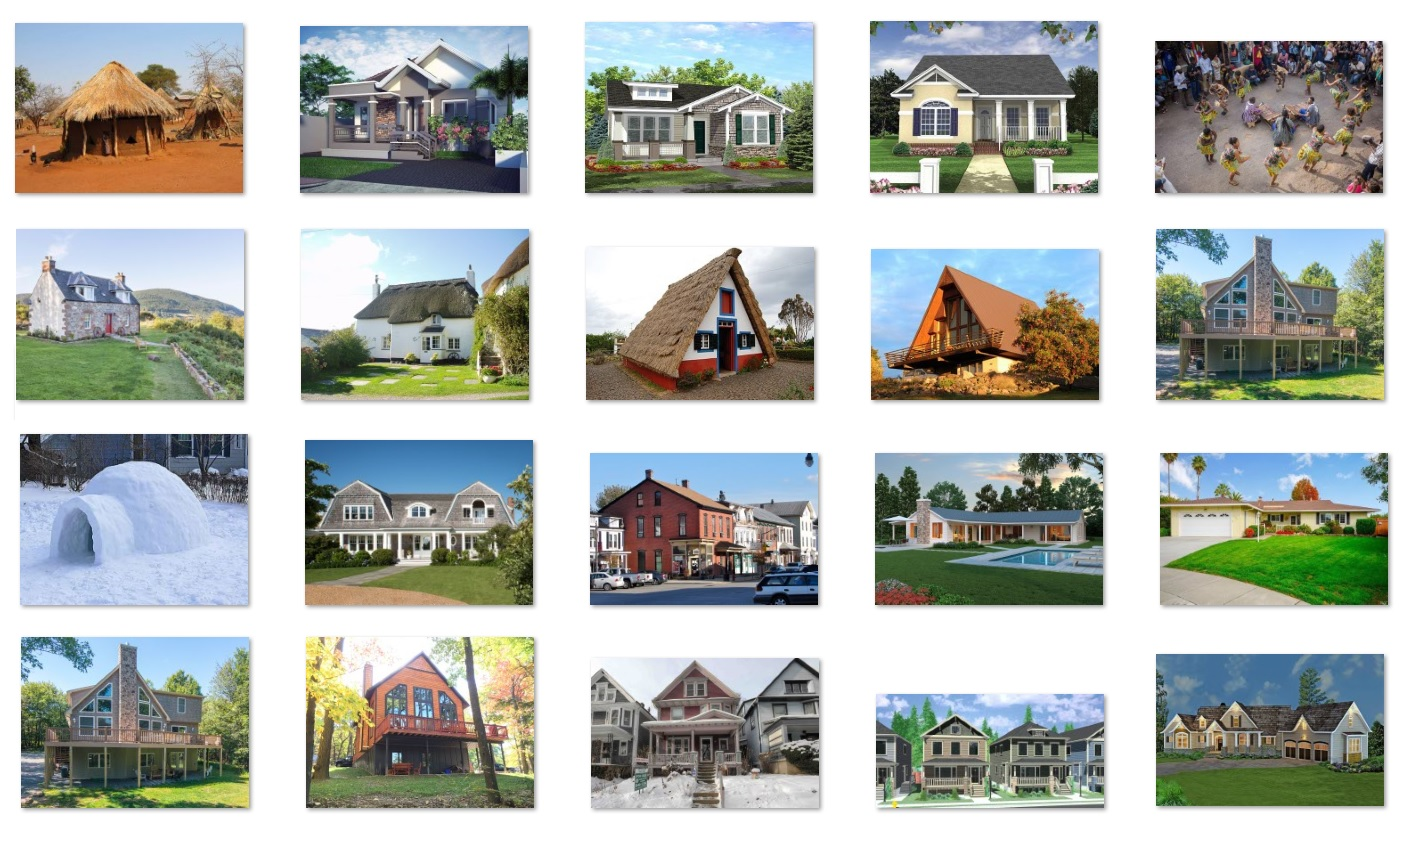 Top American House Styles & Designs (1800 To 2019) - Meqasa Blog